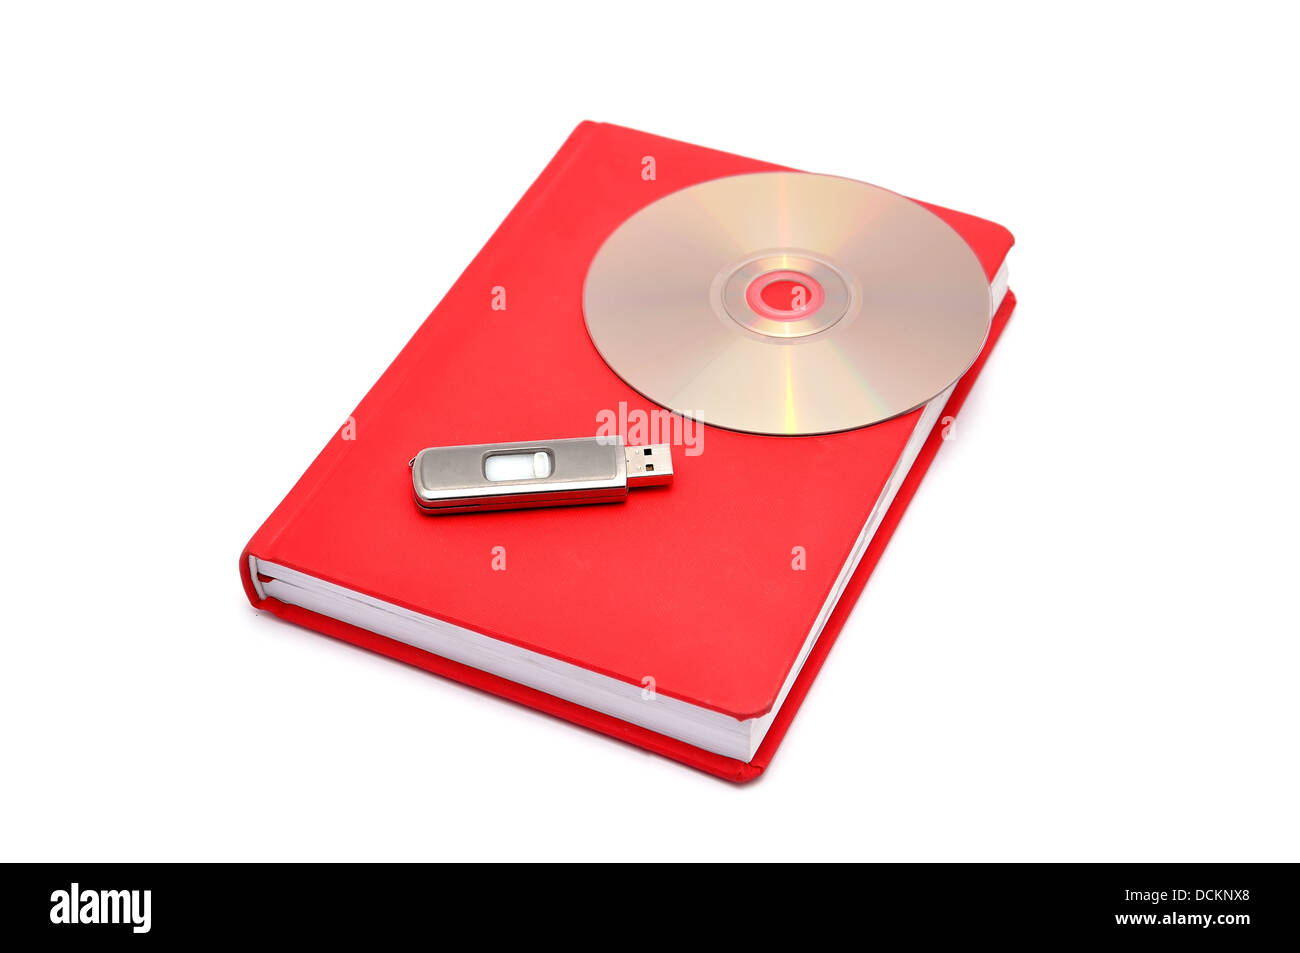 diary, flash drive and cd - Stock Image